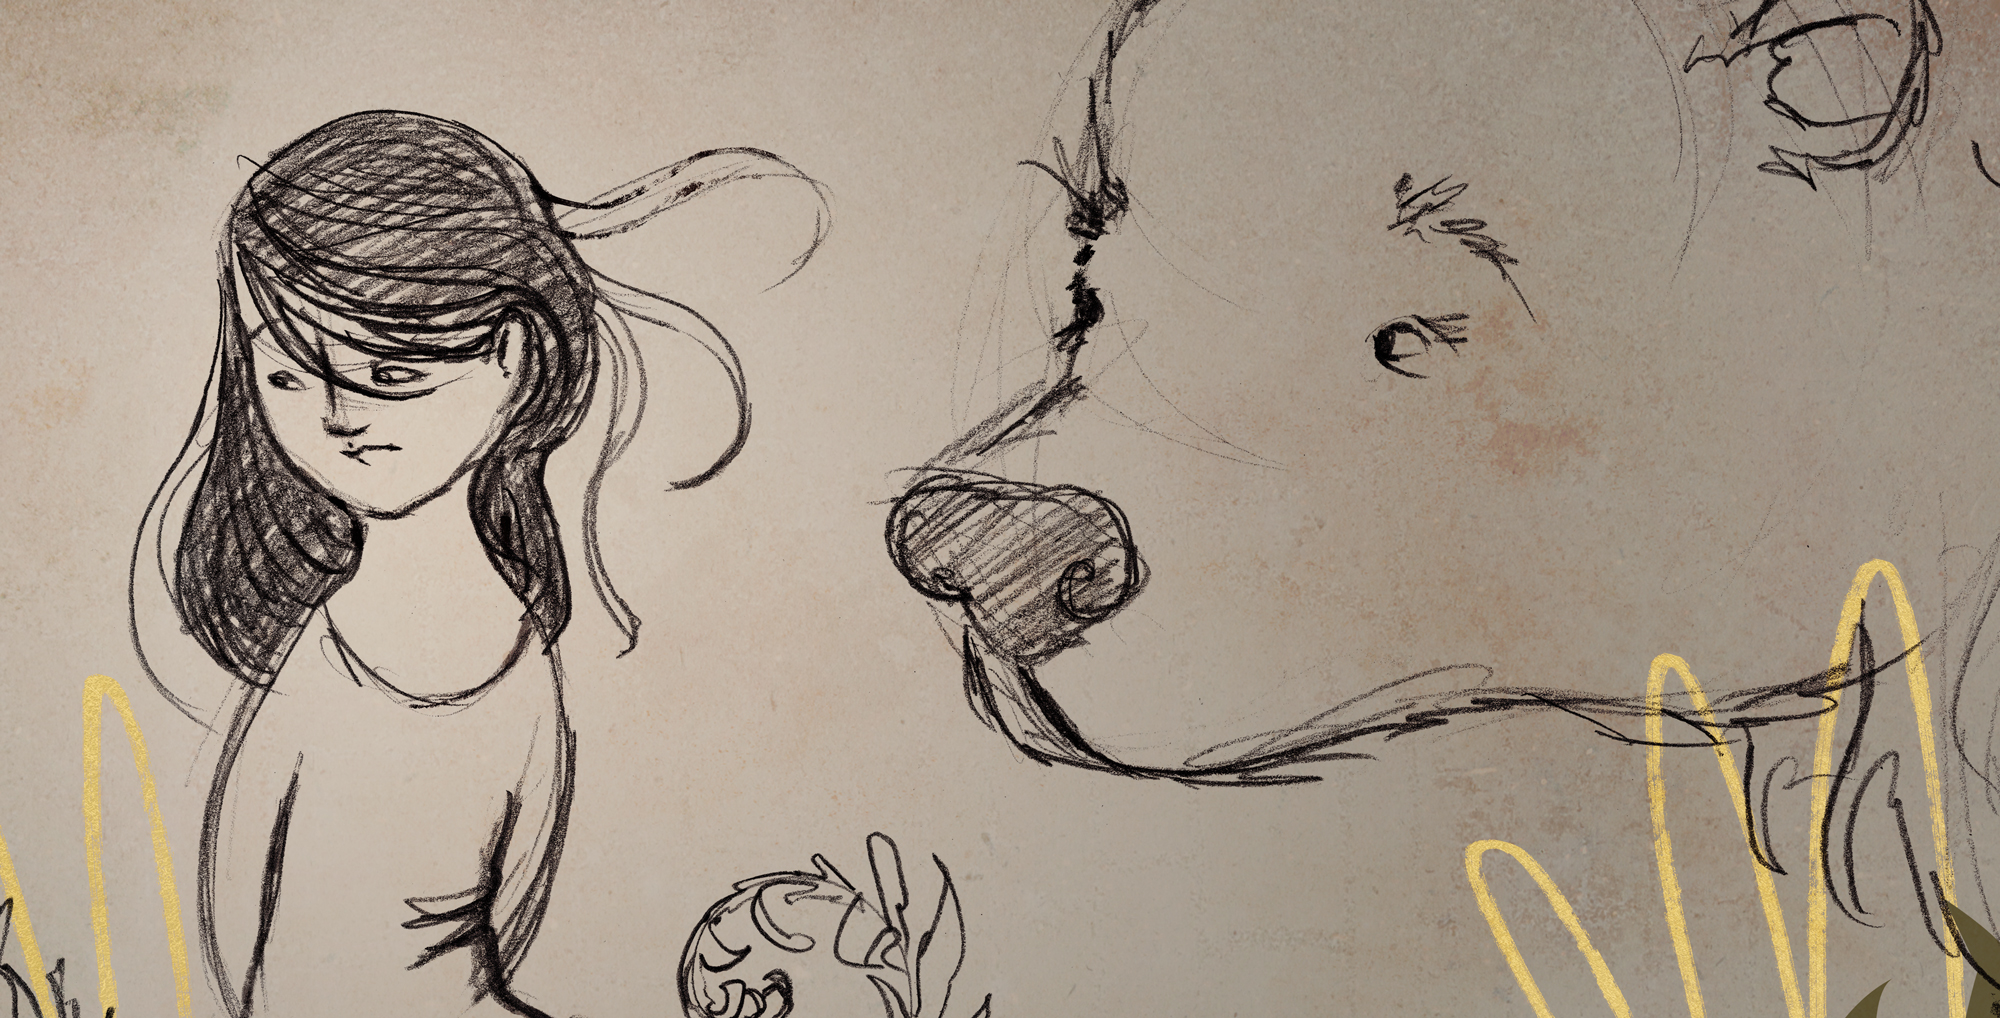 A peek into the sketch phase.